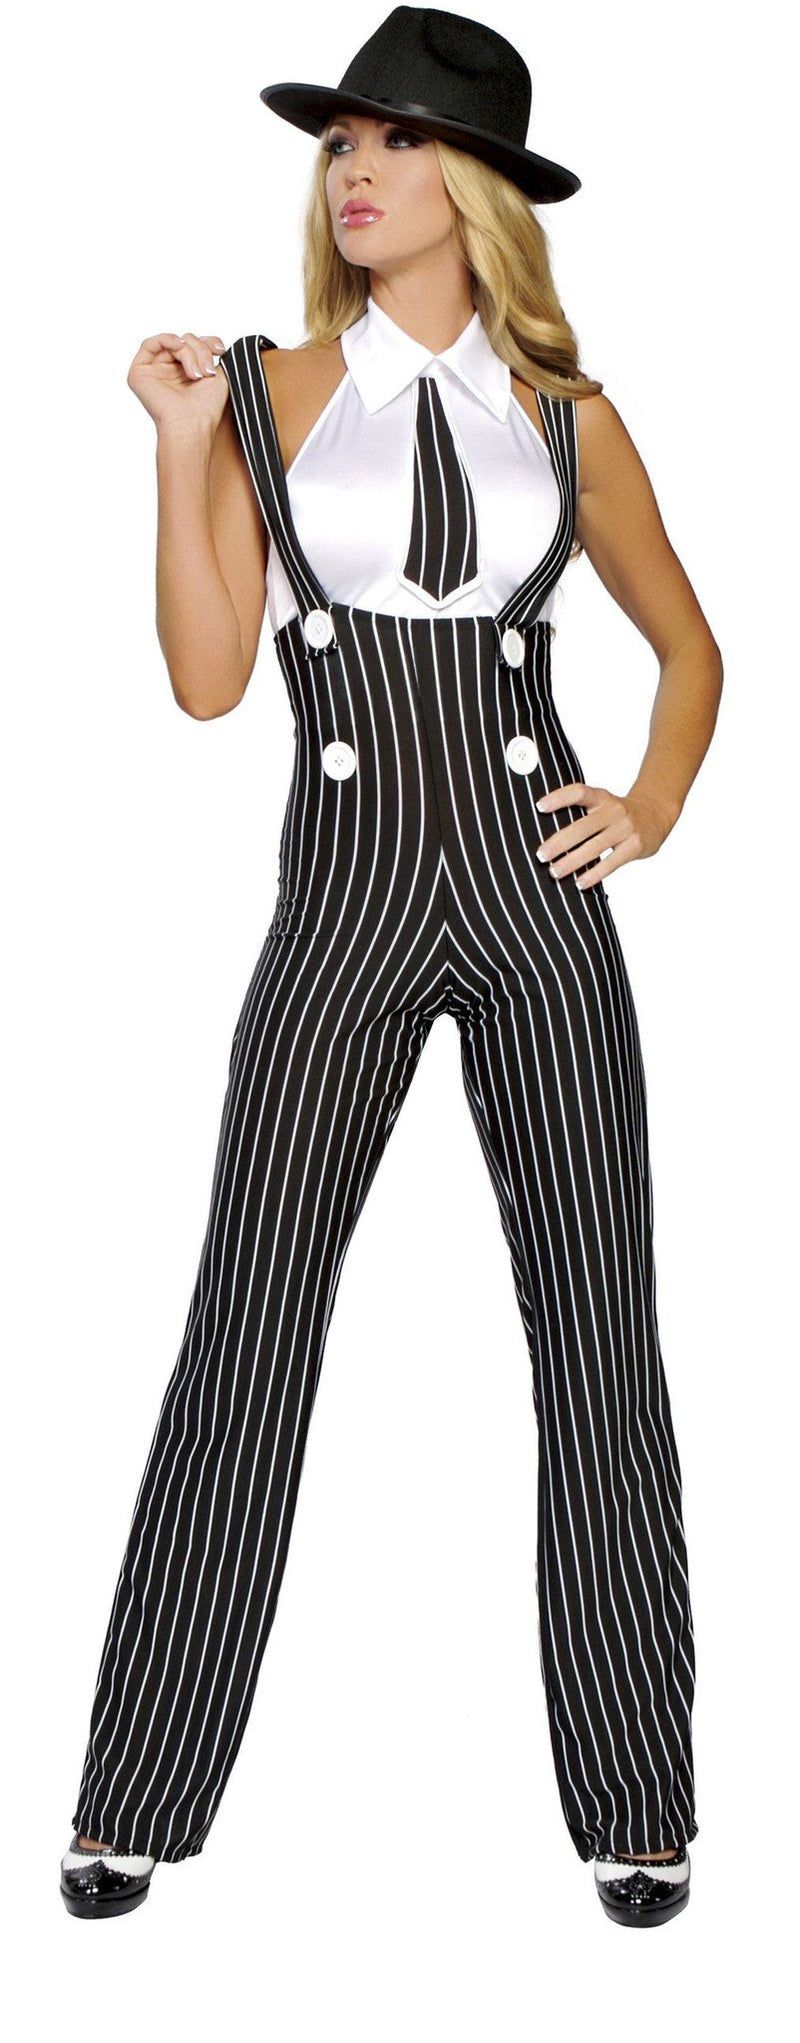 Buy 4109 - 2Pc Gangsta Mama from Rave Fix for $51.75 with Same Day Shipping Designed by Roma Costume 4109-AS-S/M